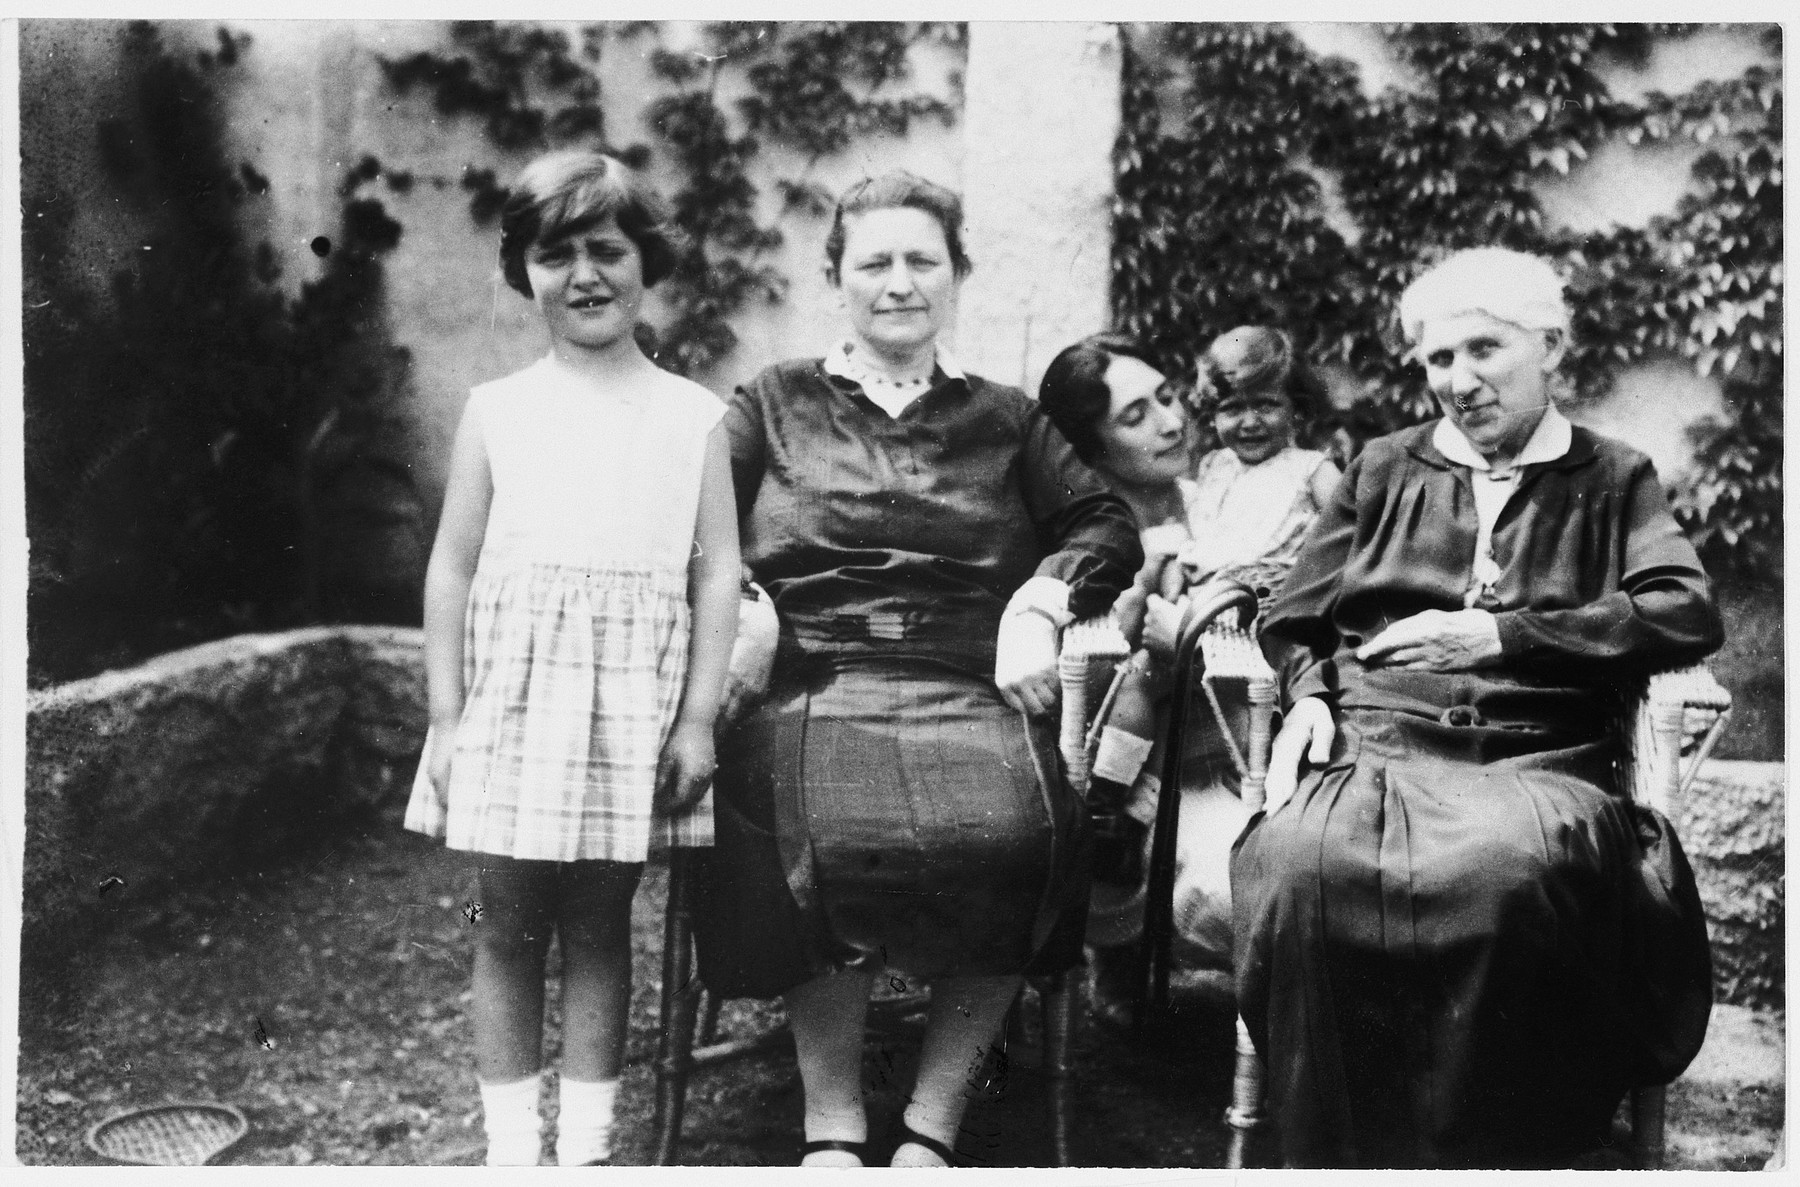 Portrait of four generations of Czech-Jewish women.  From left to right are Eva Bermann, Leopoldine Pollenz, Anny Bermann holding her baby daughter Doris, and Eva and Doris's great grandmother.